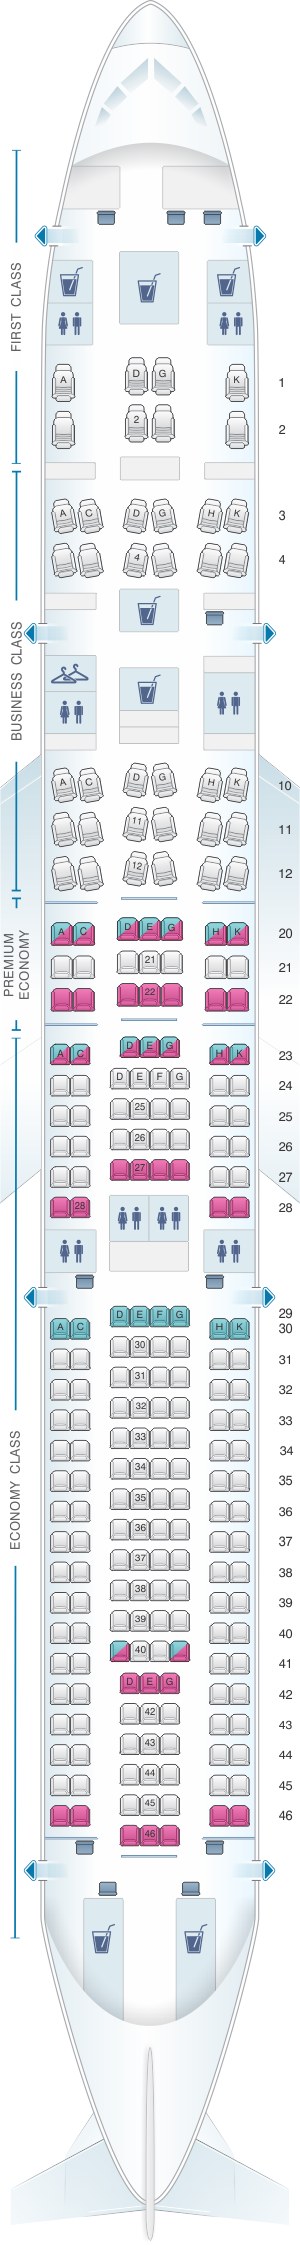 Seat map for Lufthansa Airbus A330 300 236pax